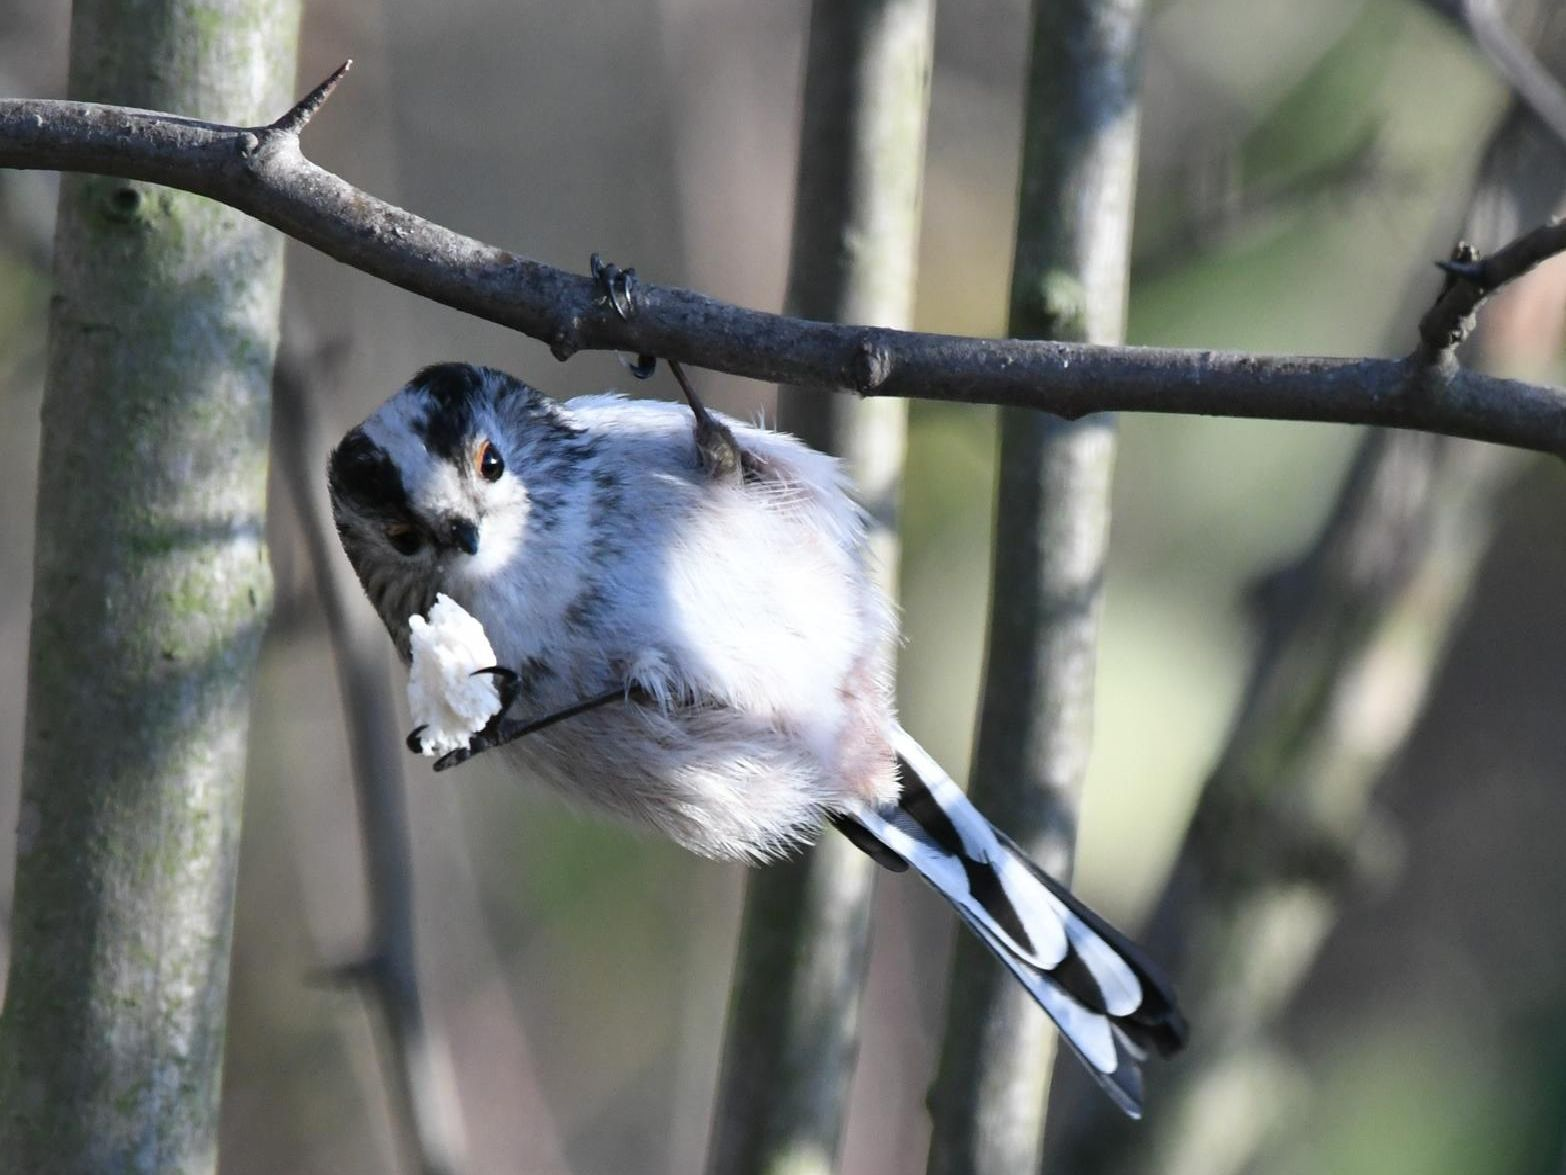 Do you know what this cute little acrobat is called?'Answer: A long-tailed tit.